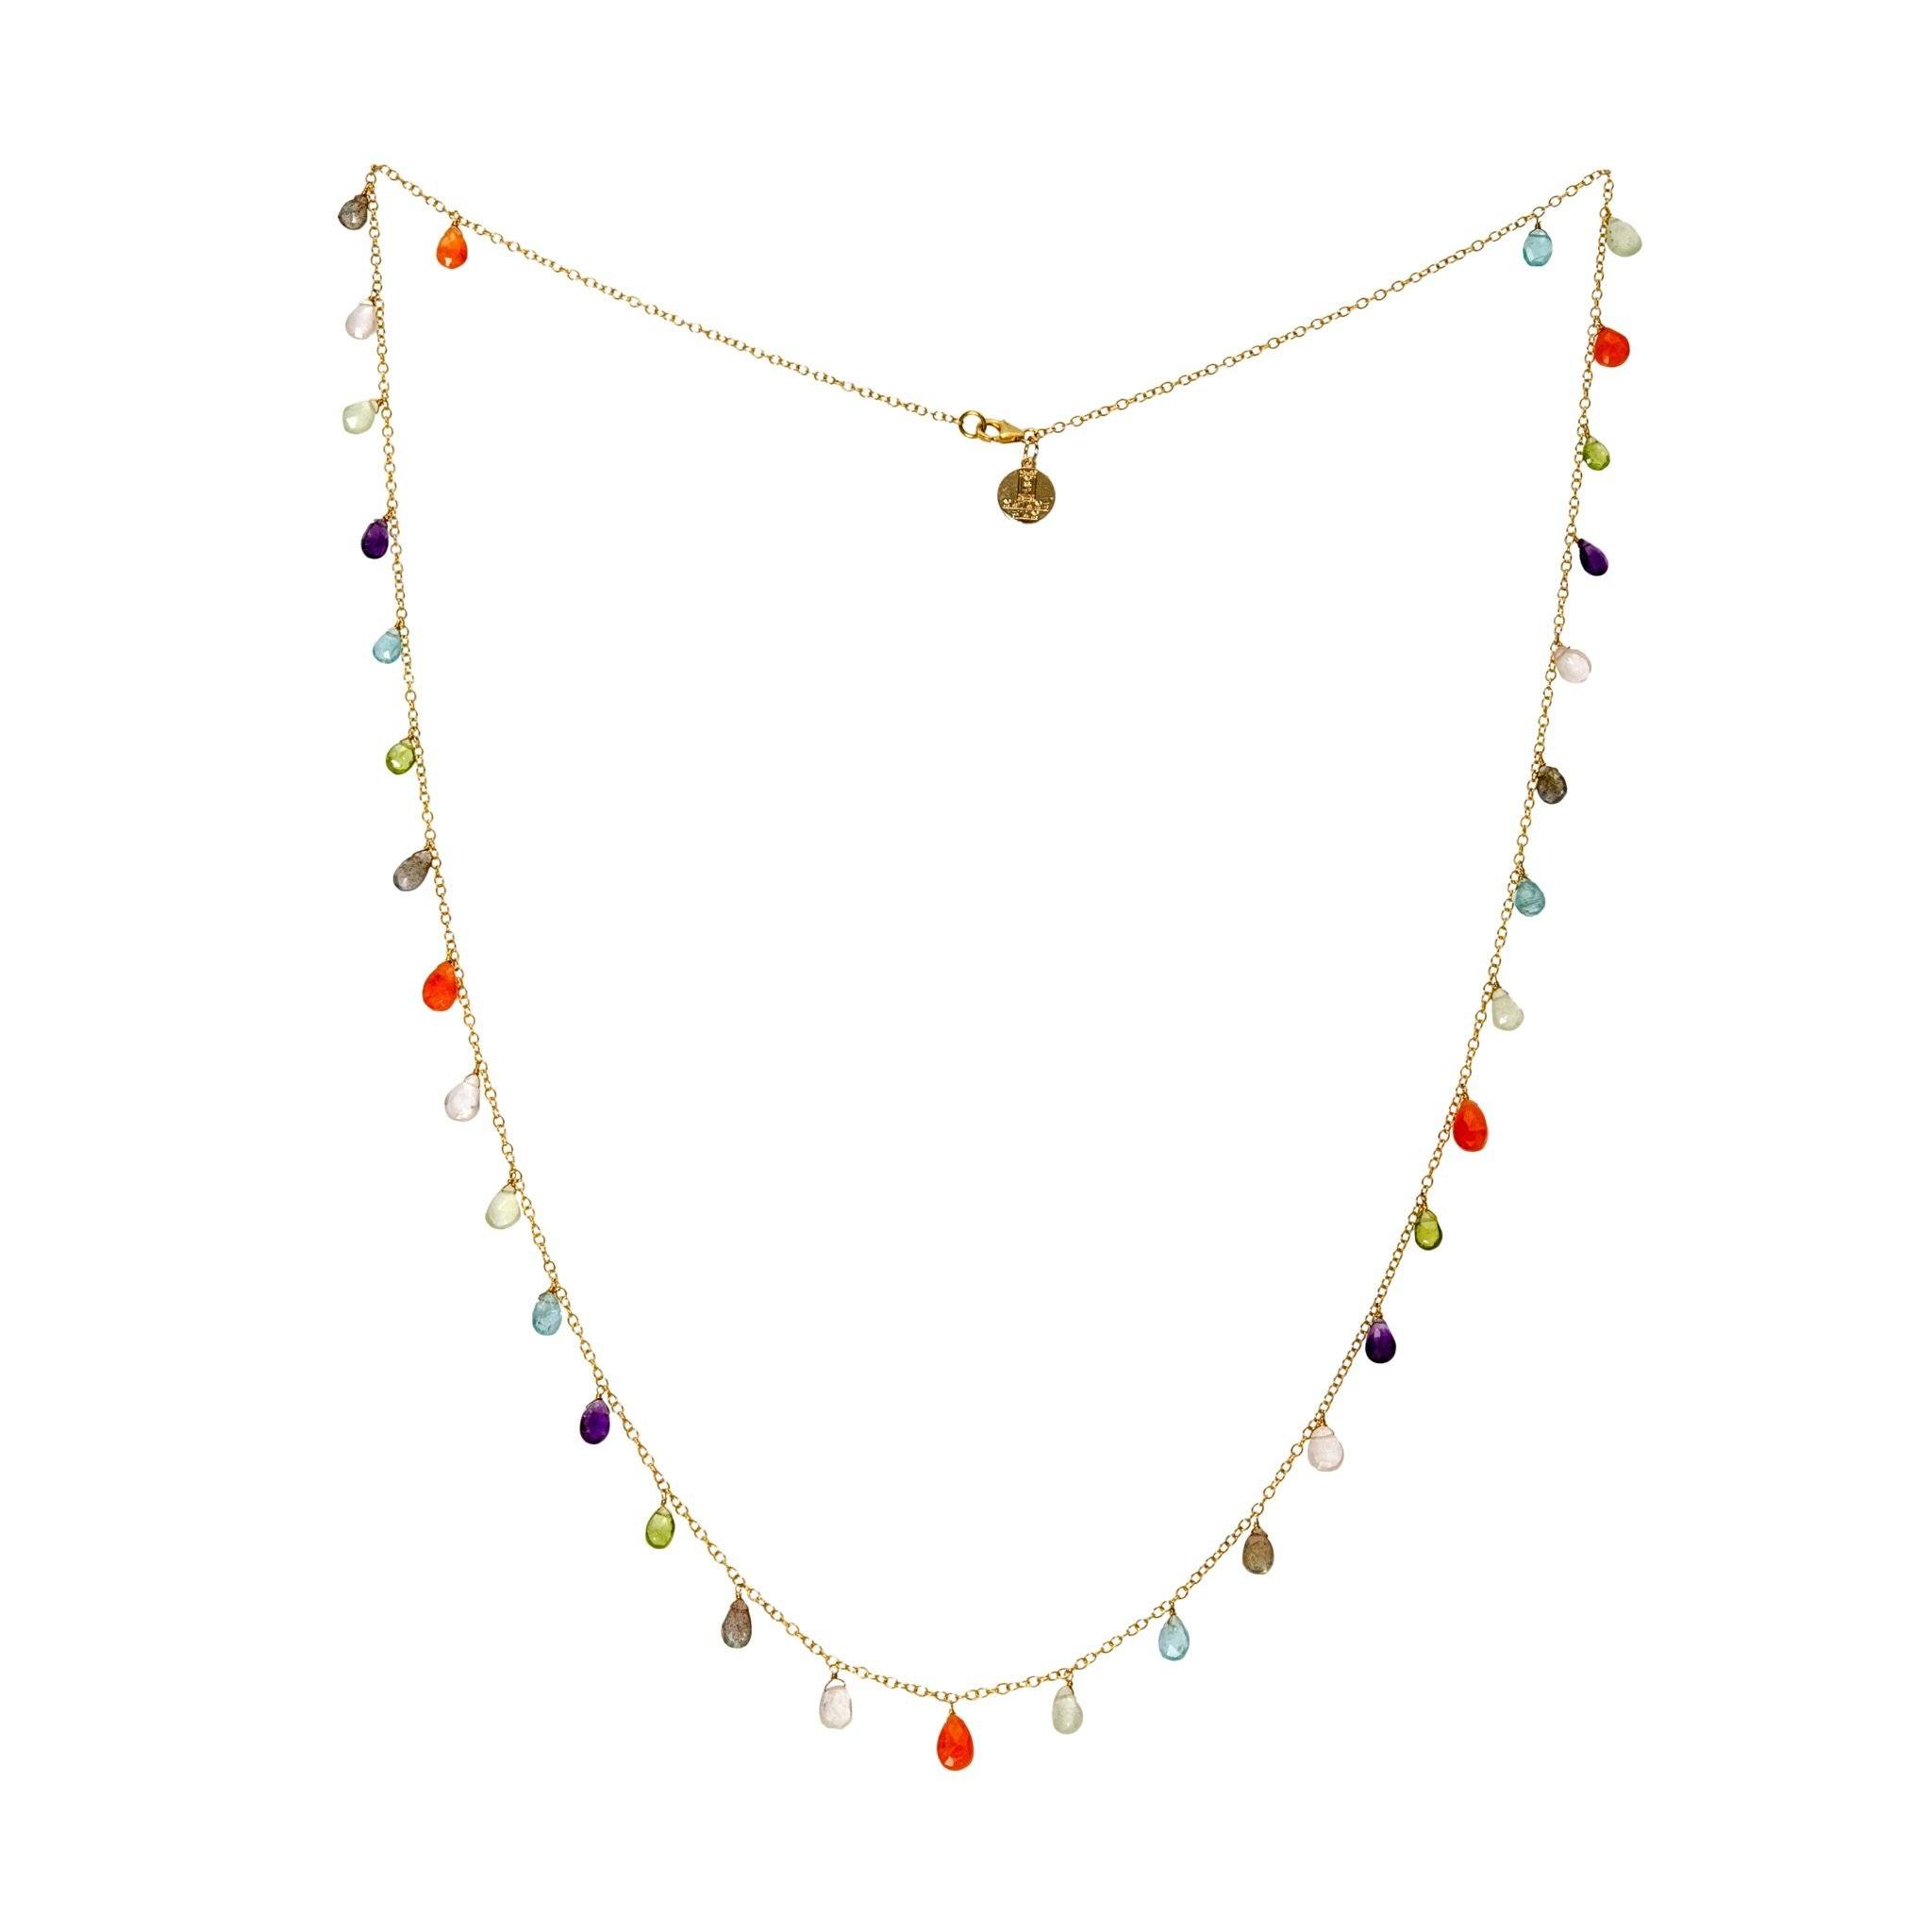 Nahm semi precious multicolor necklace - MadamSiam